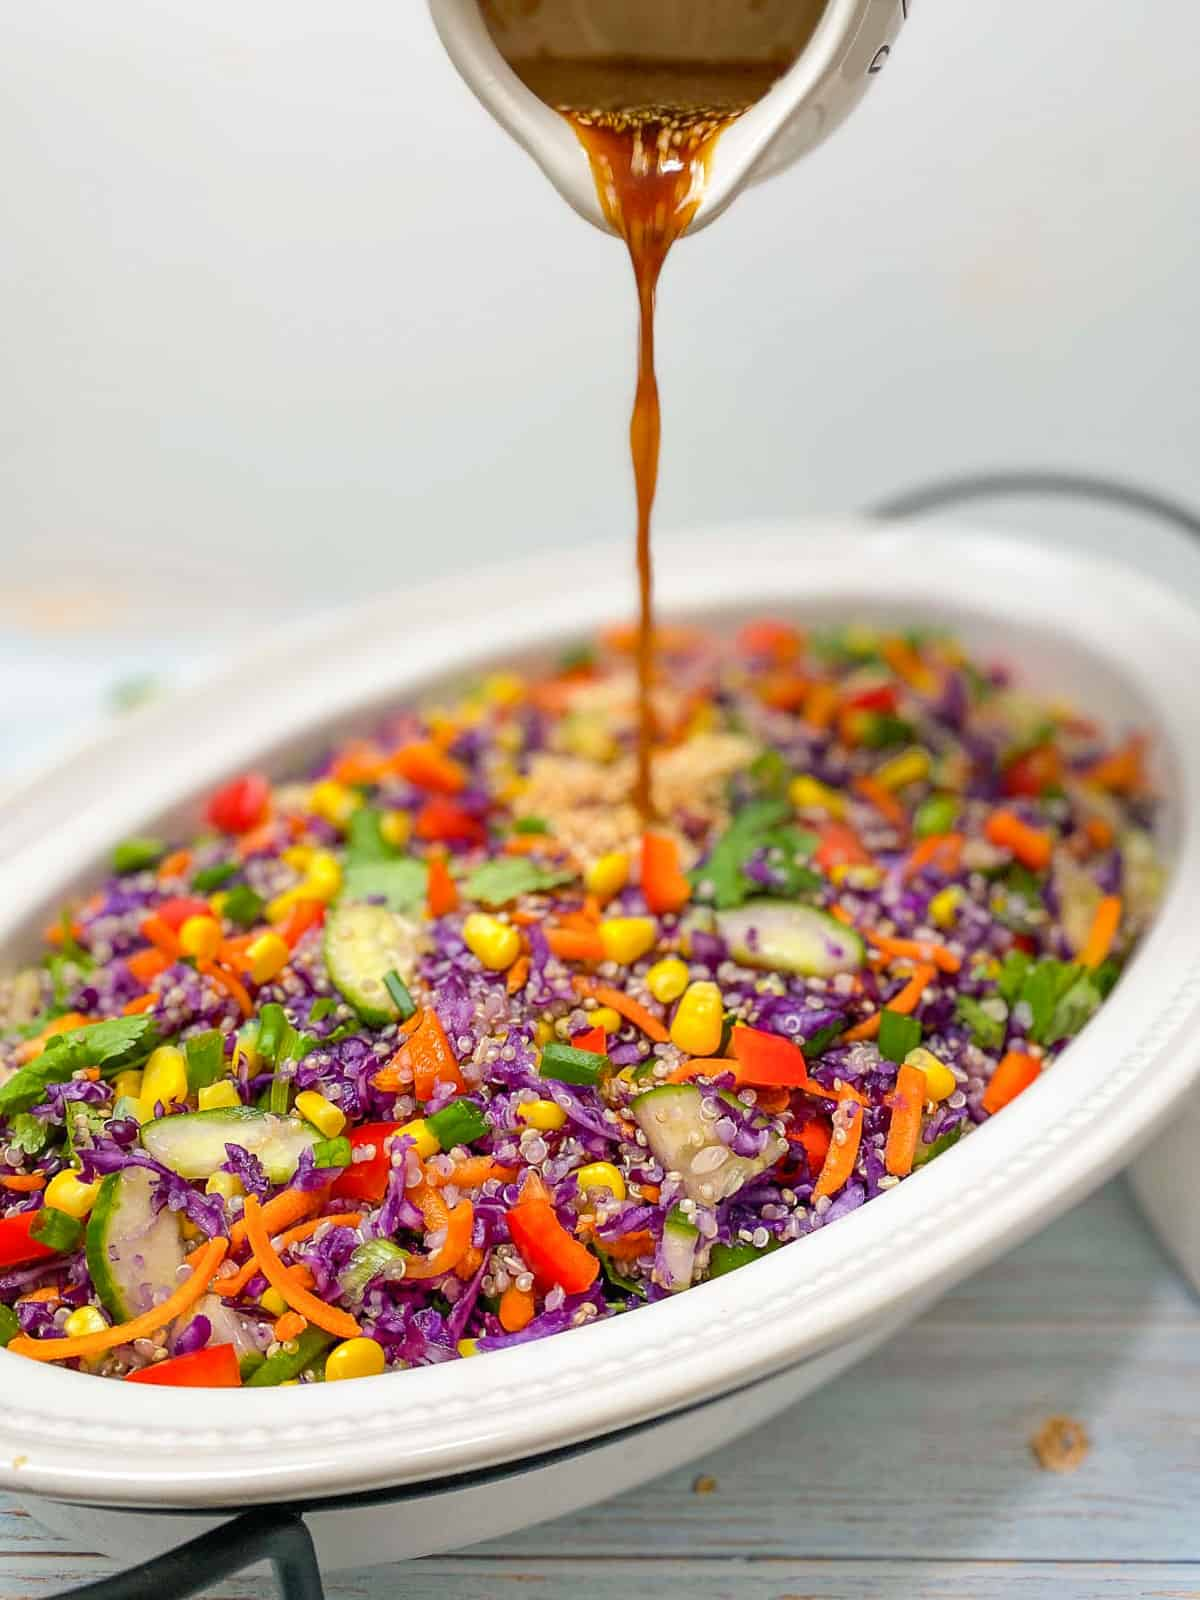 Salad dressing being poured on top of cabbage salad